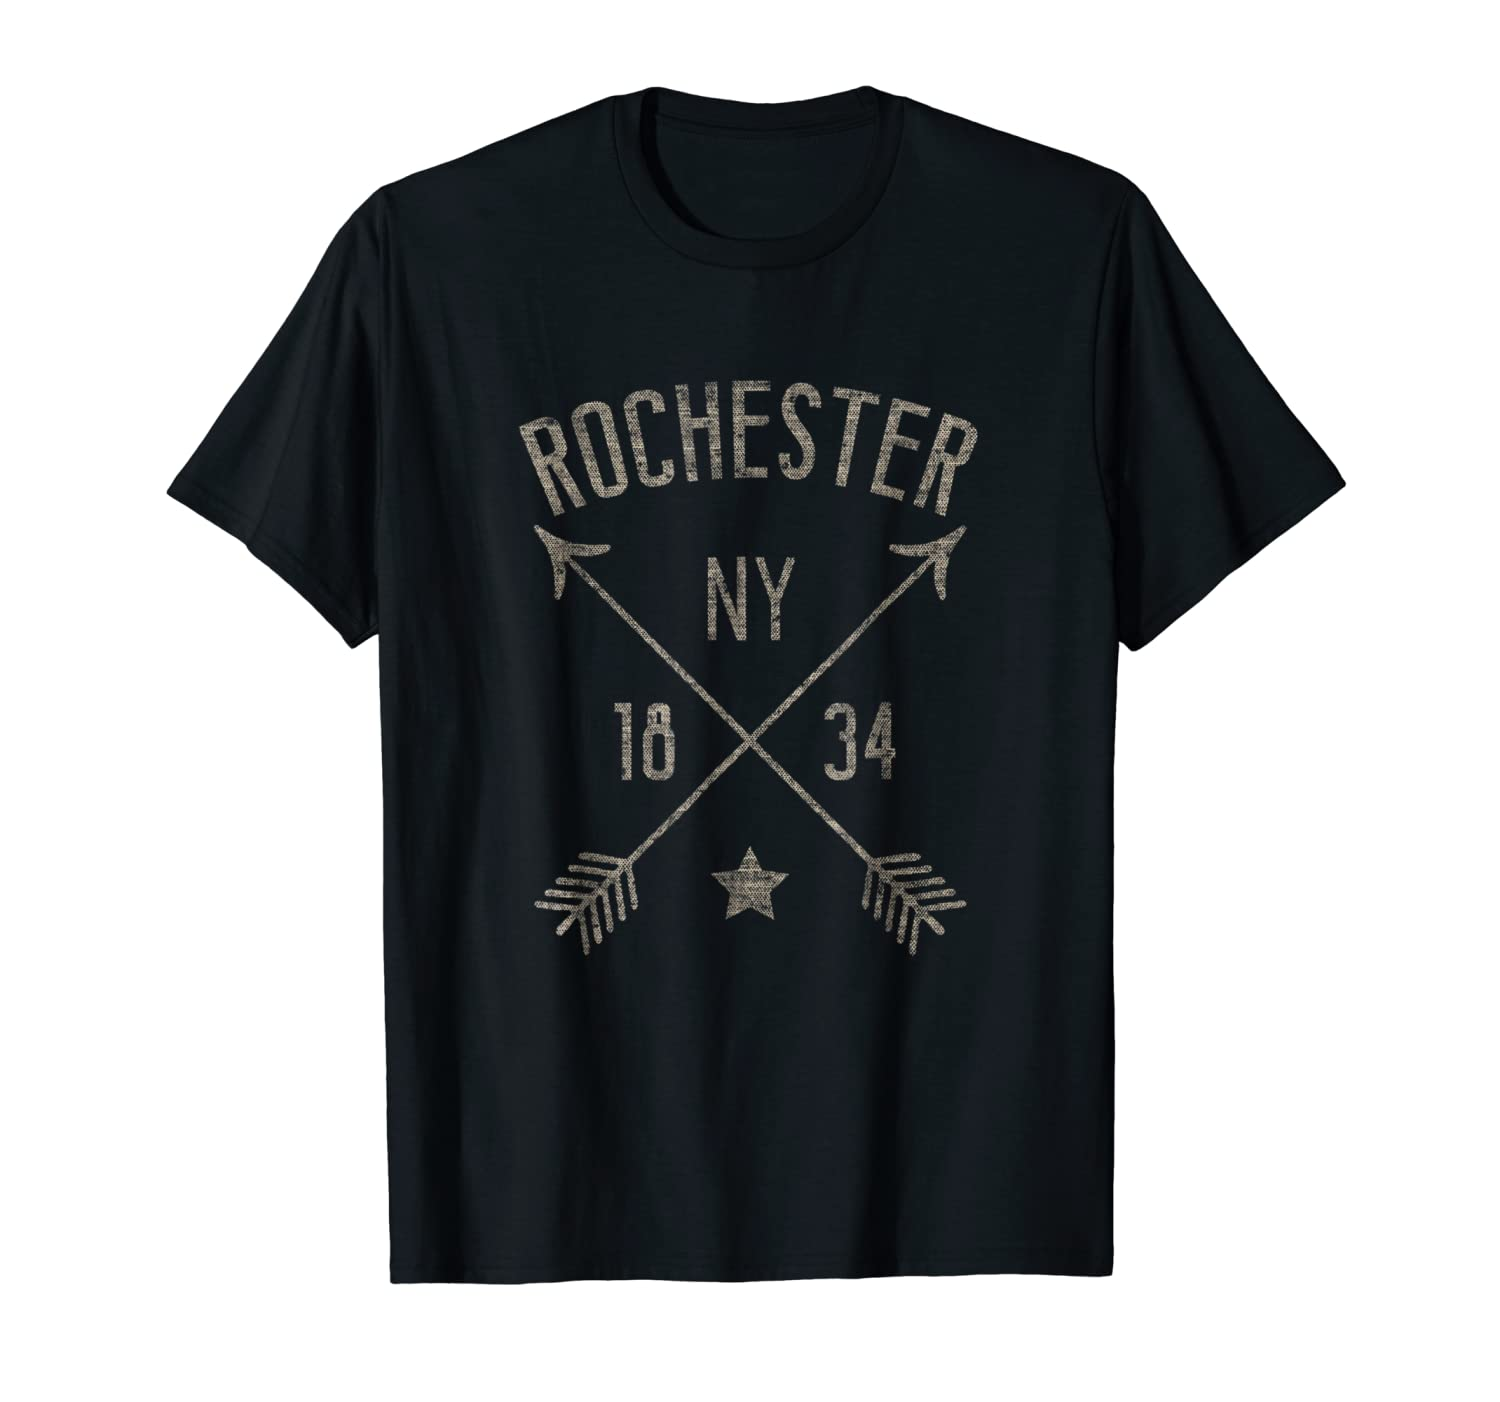 Rochester Ny T Shirt Cool Vintage Retro Style Home City